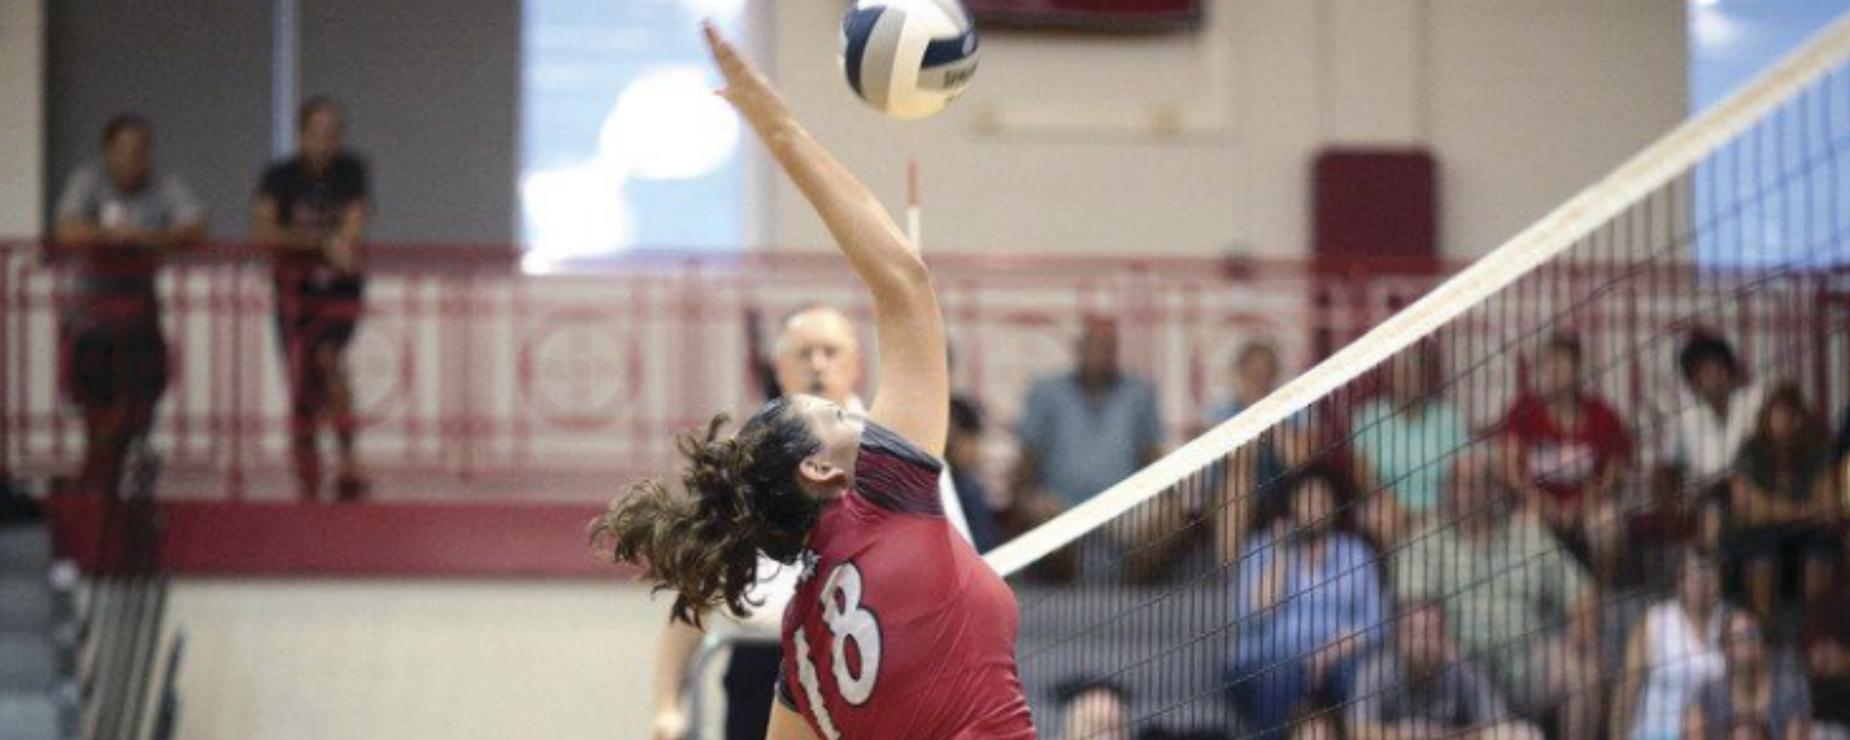 A volleyball player jumps to spike the ball in a match